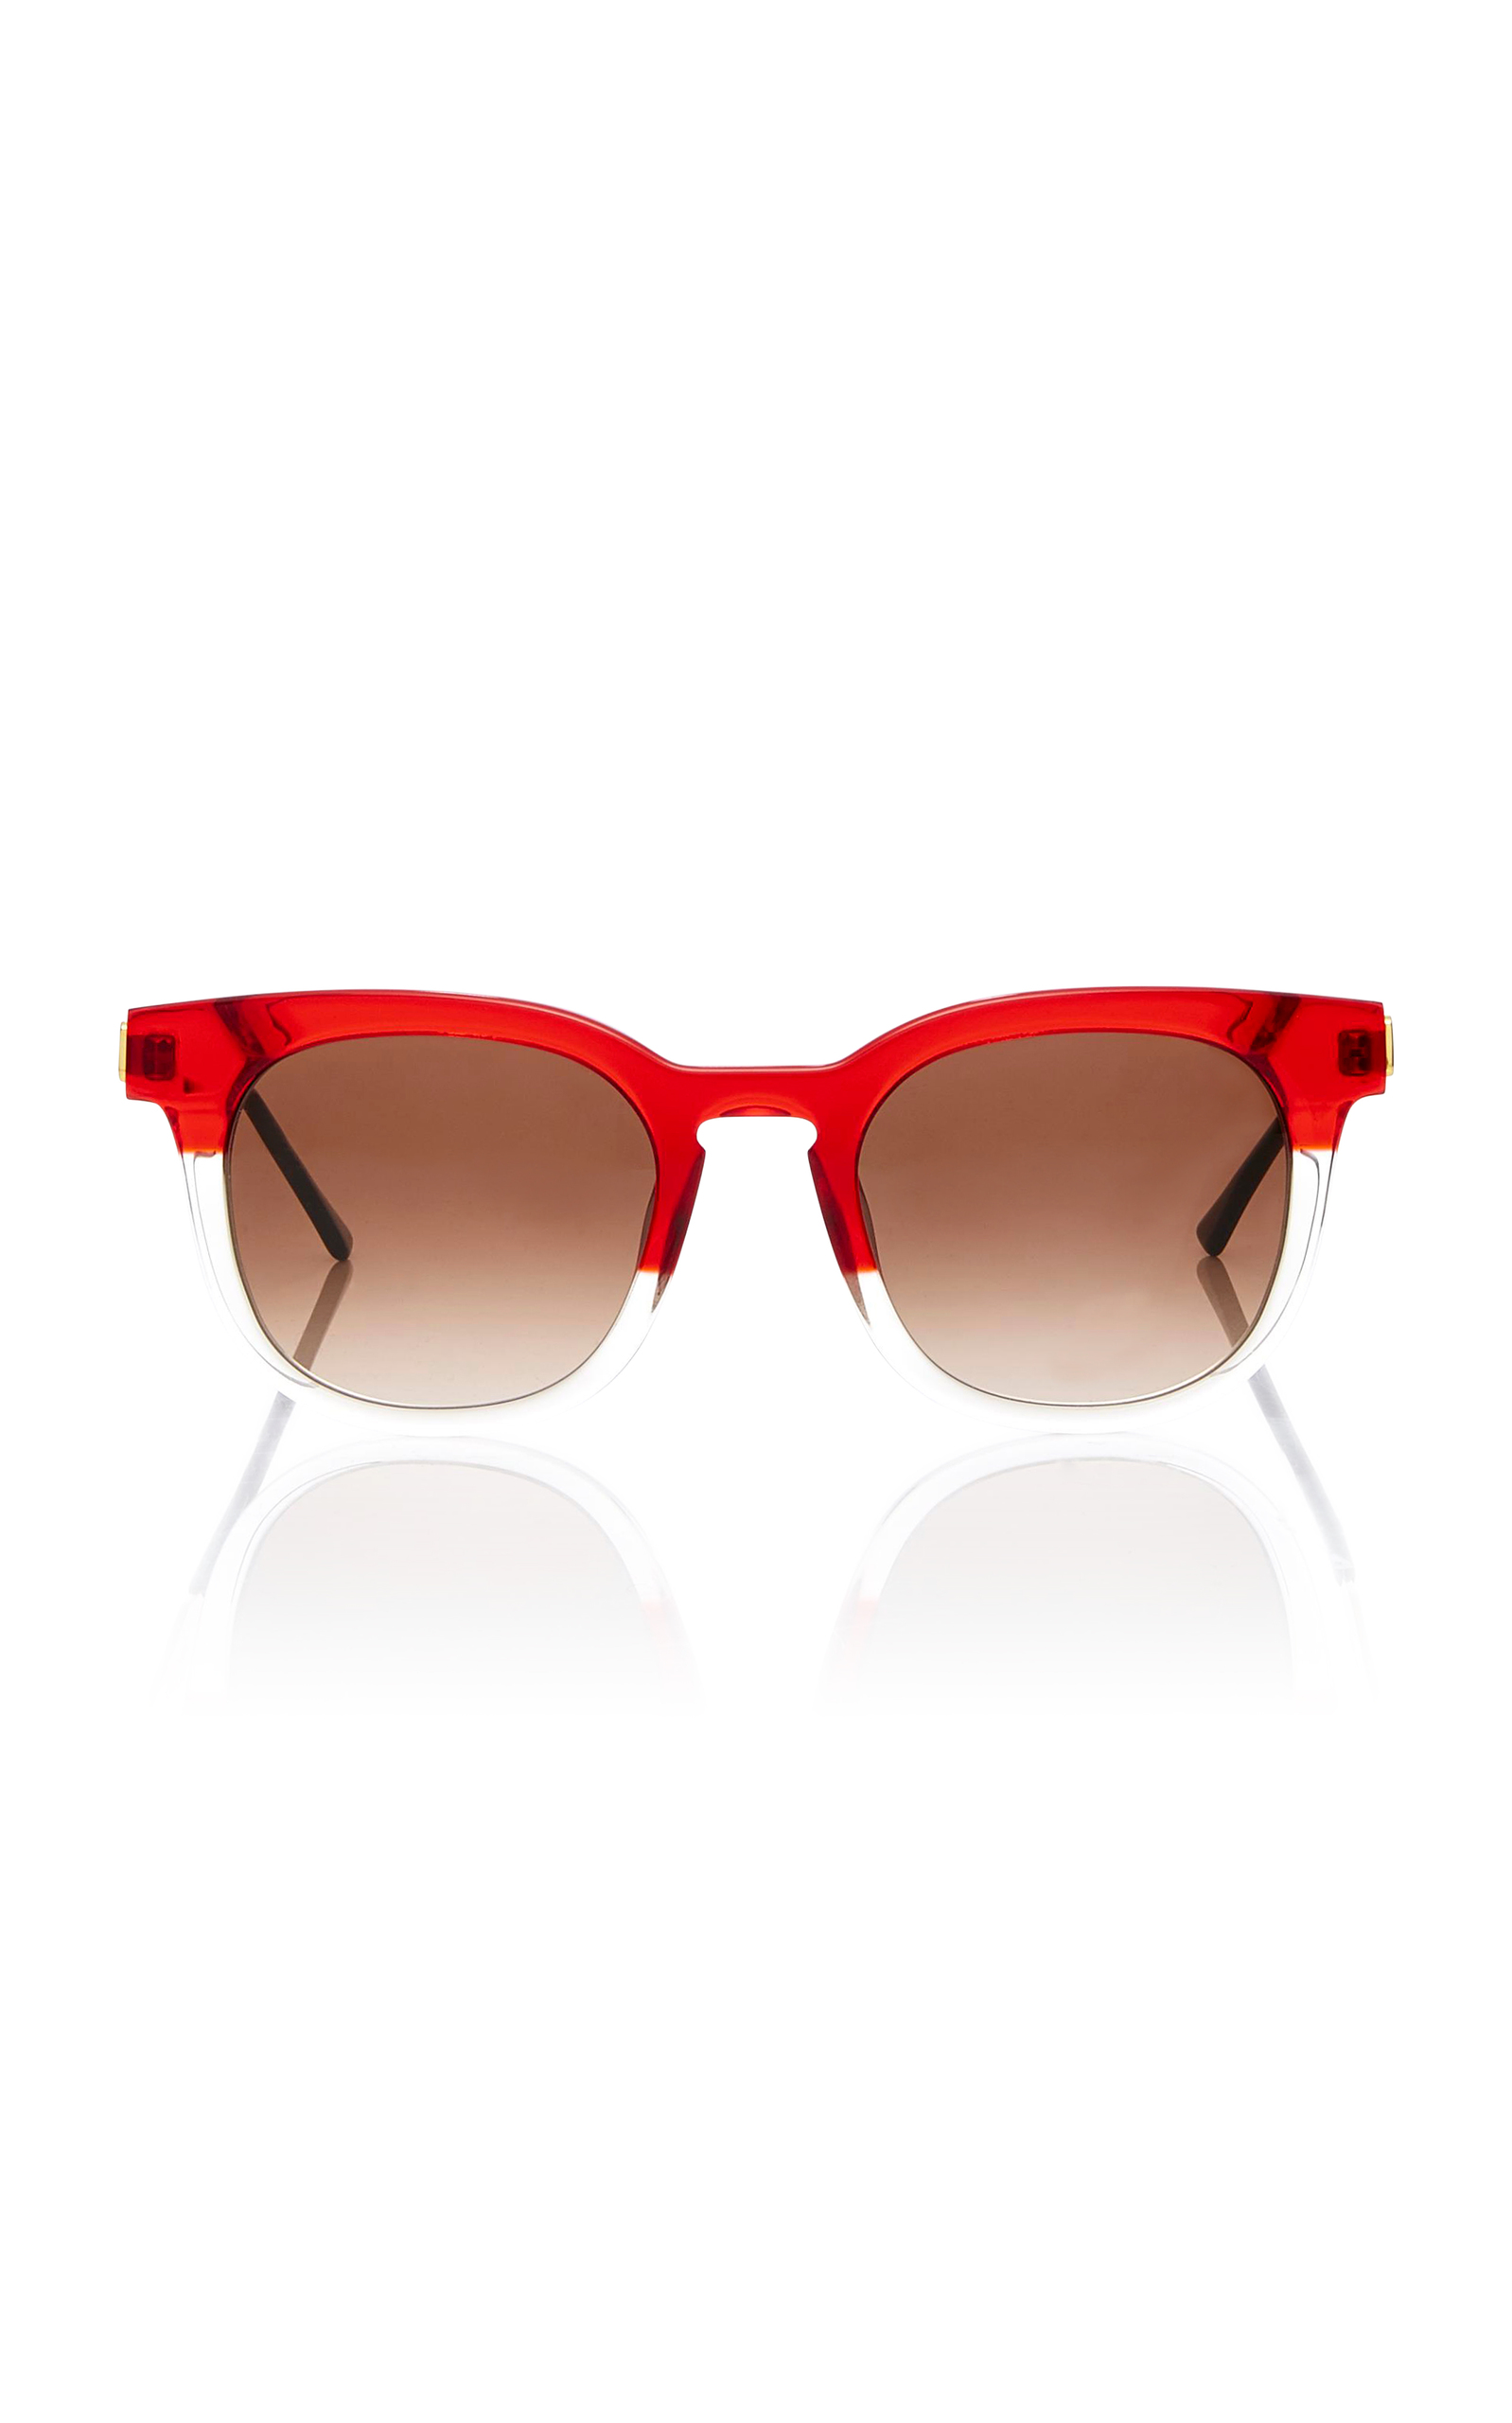 Penalty Champagne-Red Tone Acetate Sunglasses Thierry Lasry RvbmOjh